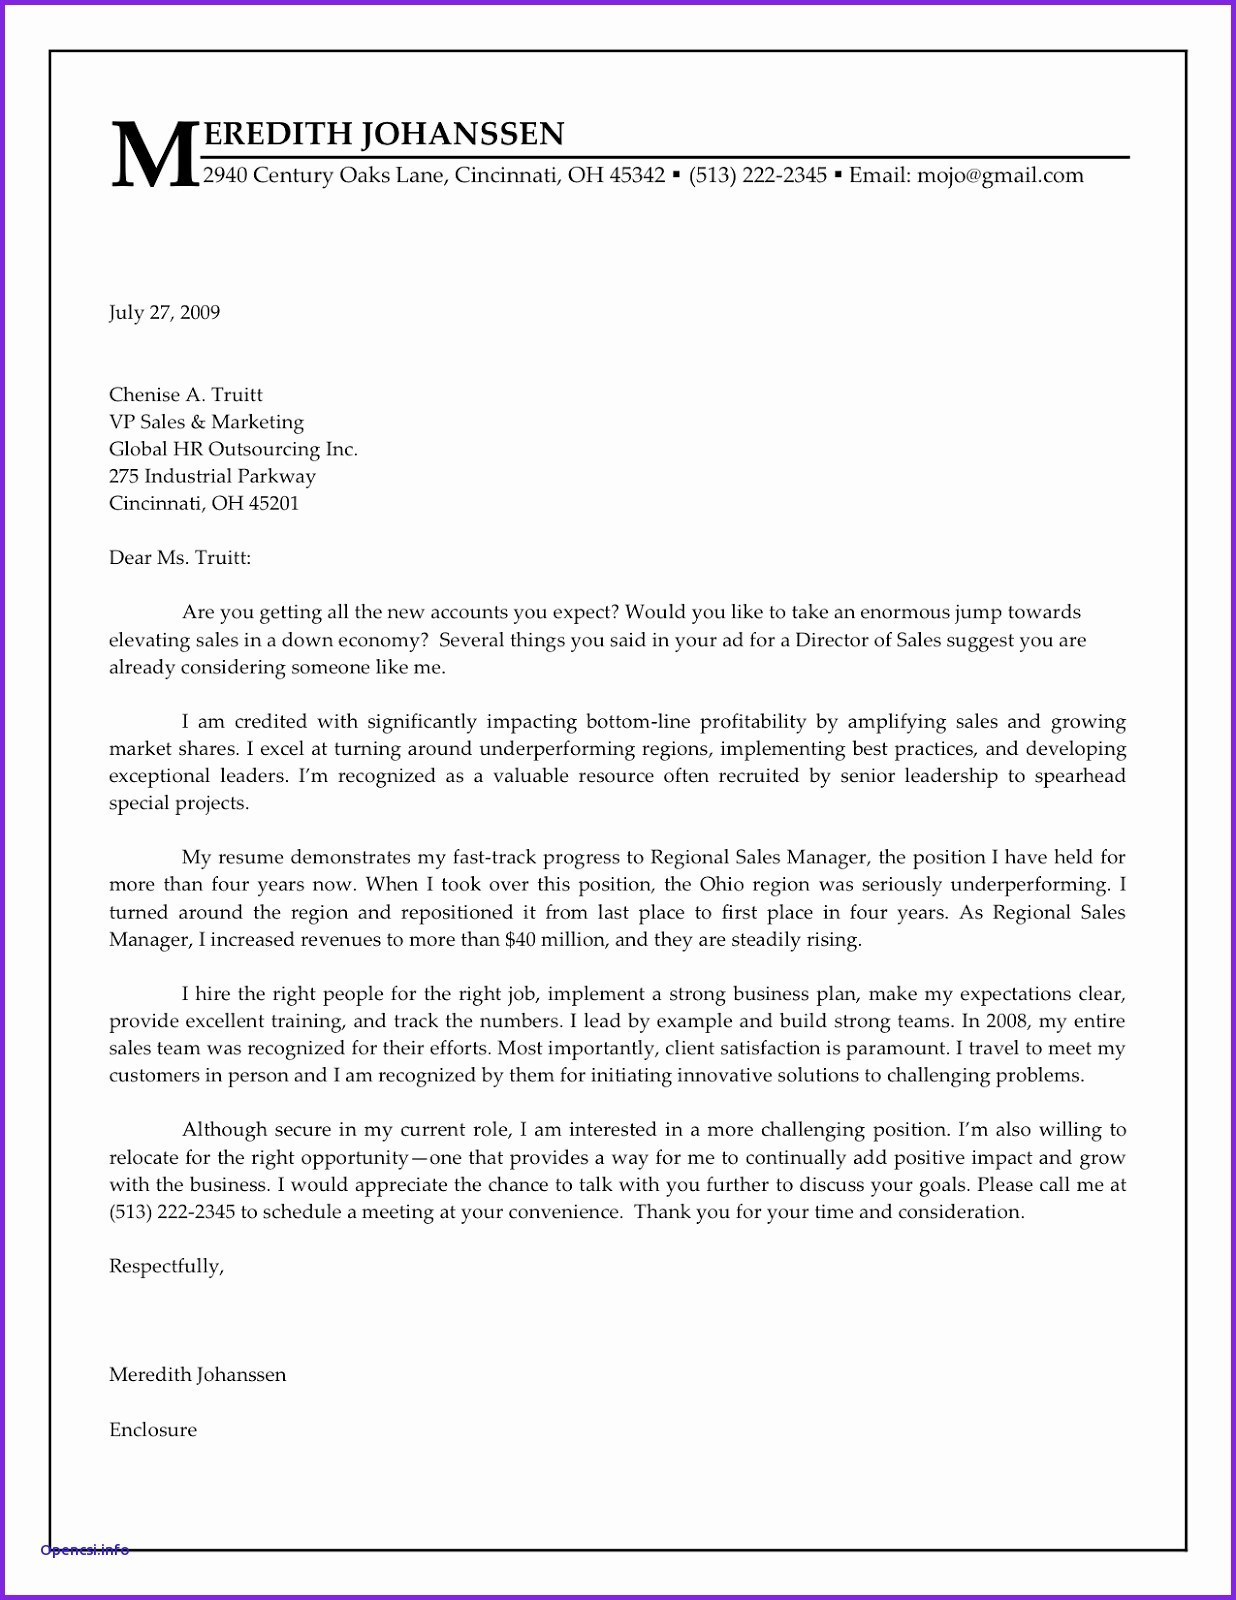 Offer Letter Template Google Docs - Lovely Google Docs Resume Template Free